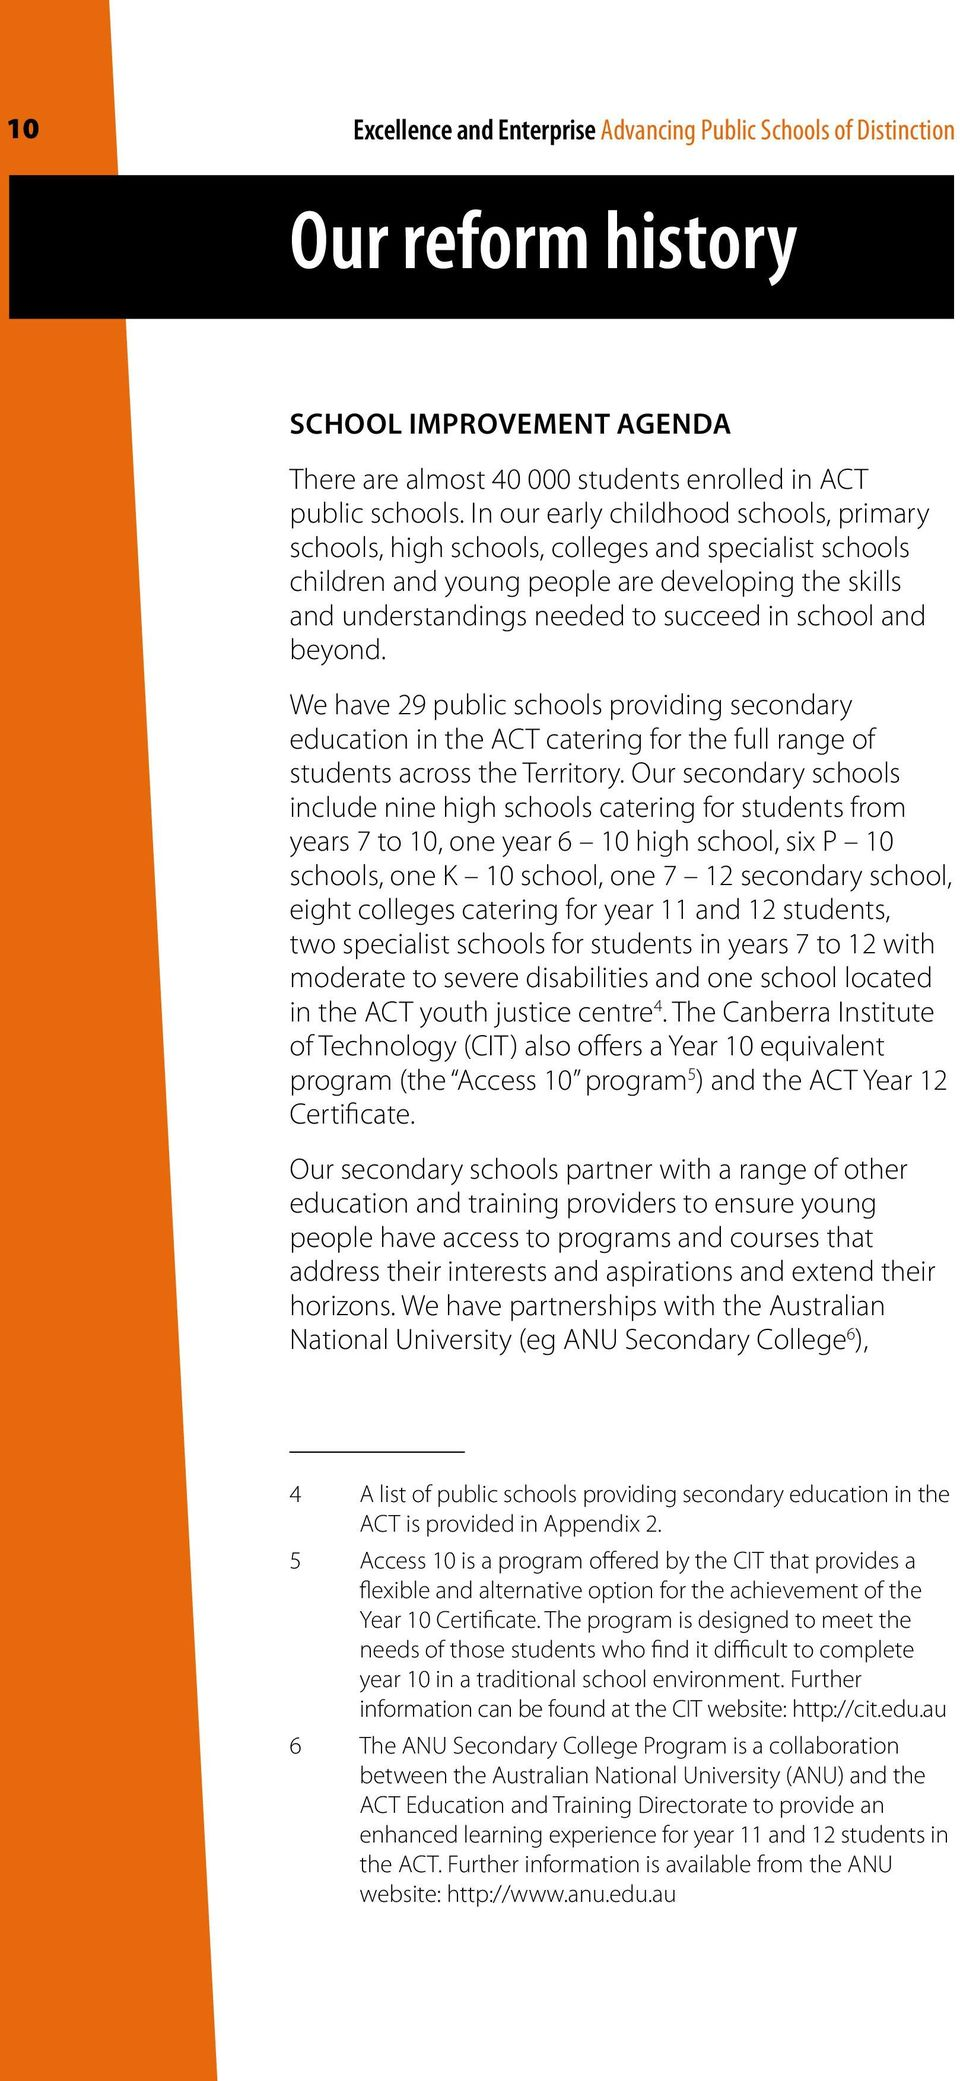 beyond. We have 29 public schools providing secondary education in the ACT catering for the full range of students across the Territory.